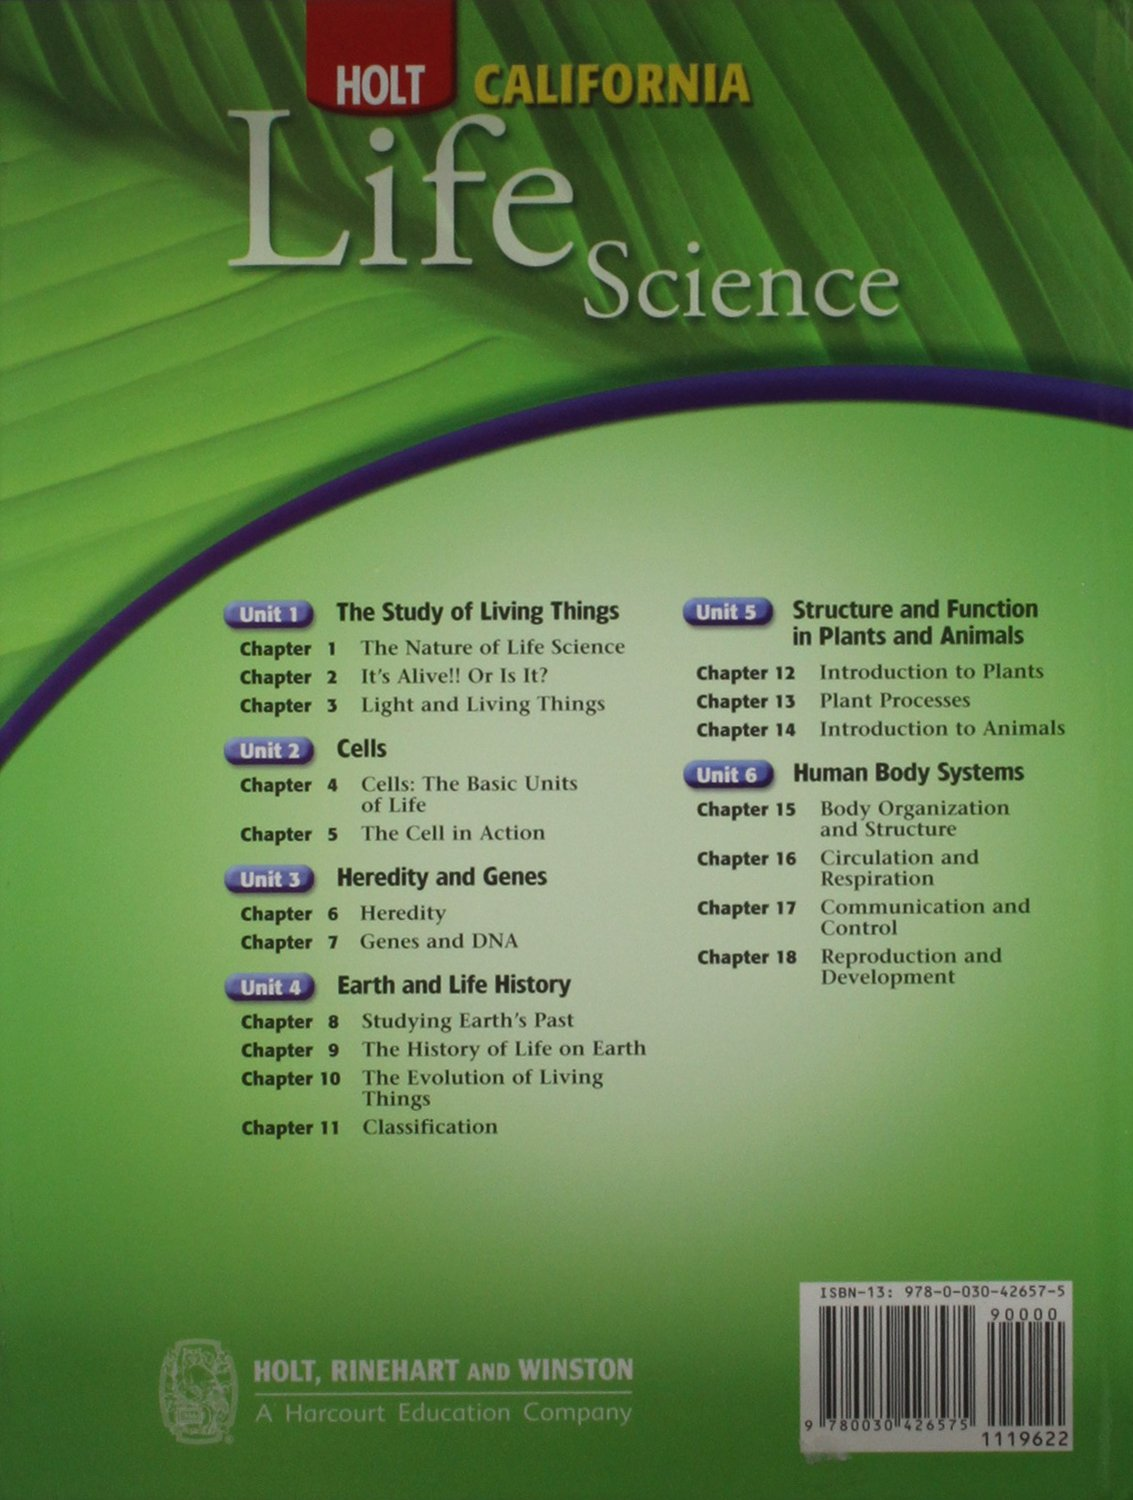 Holt California Life Science (Holt Science & Technology) by HOLT, RINEHART AND WINSTON (Image #2)